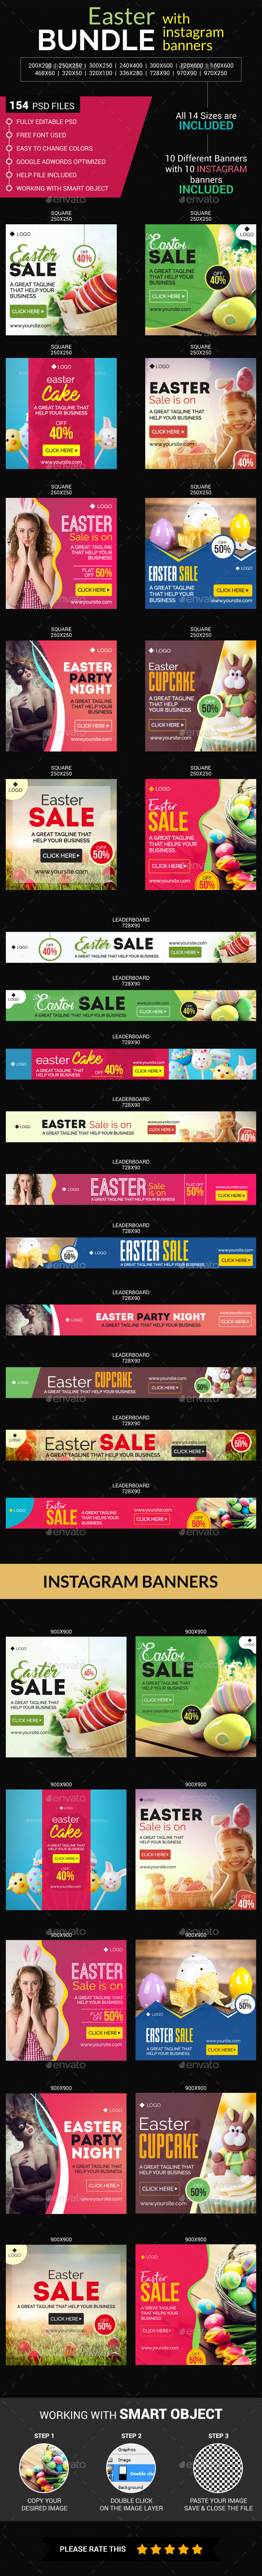 Easter Banners And Instagram Bundle - Banners & Ads Web Elements